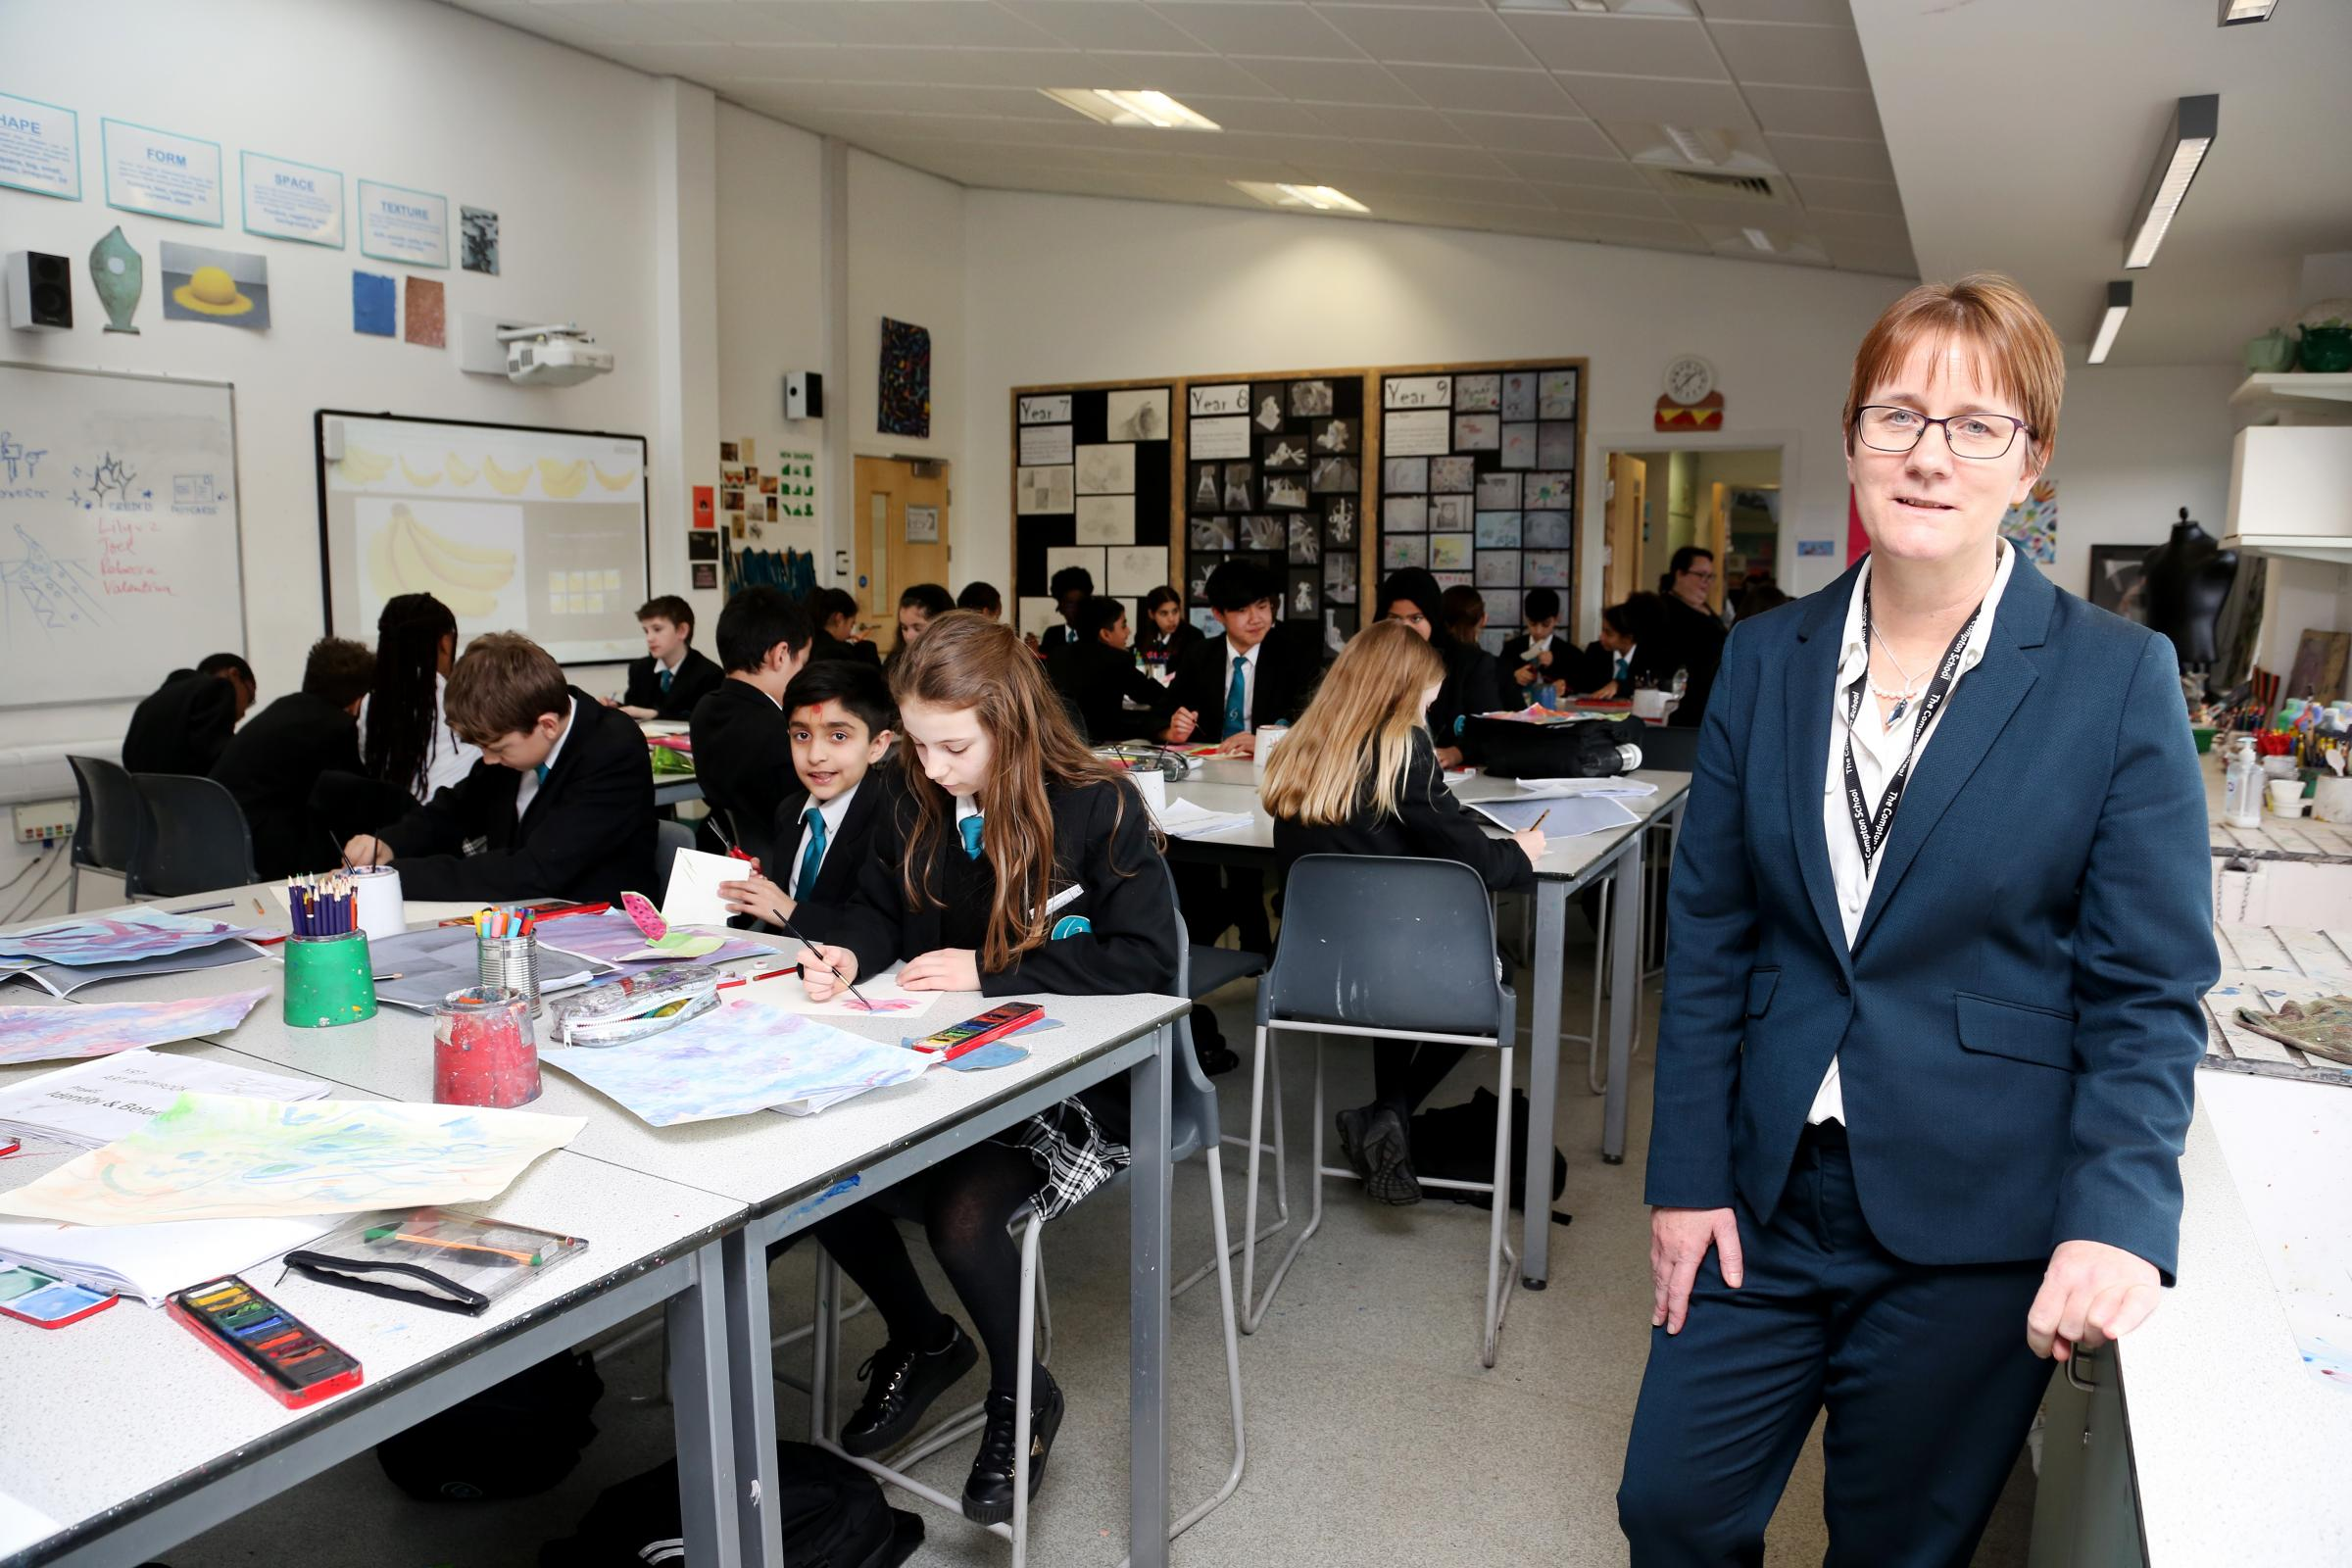 The Compton School headteacher Ann Marie Mulkerins with pupils at the school (Photo: Holly Cant)